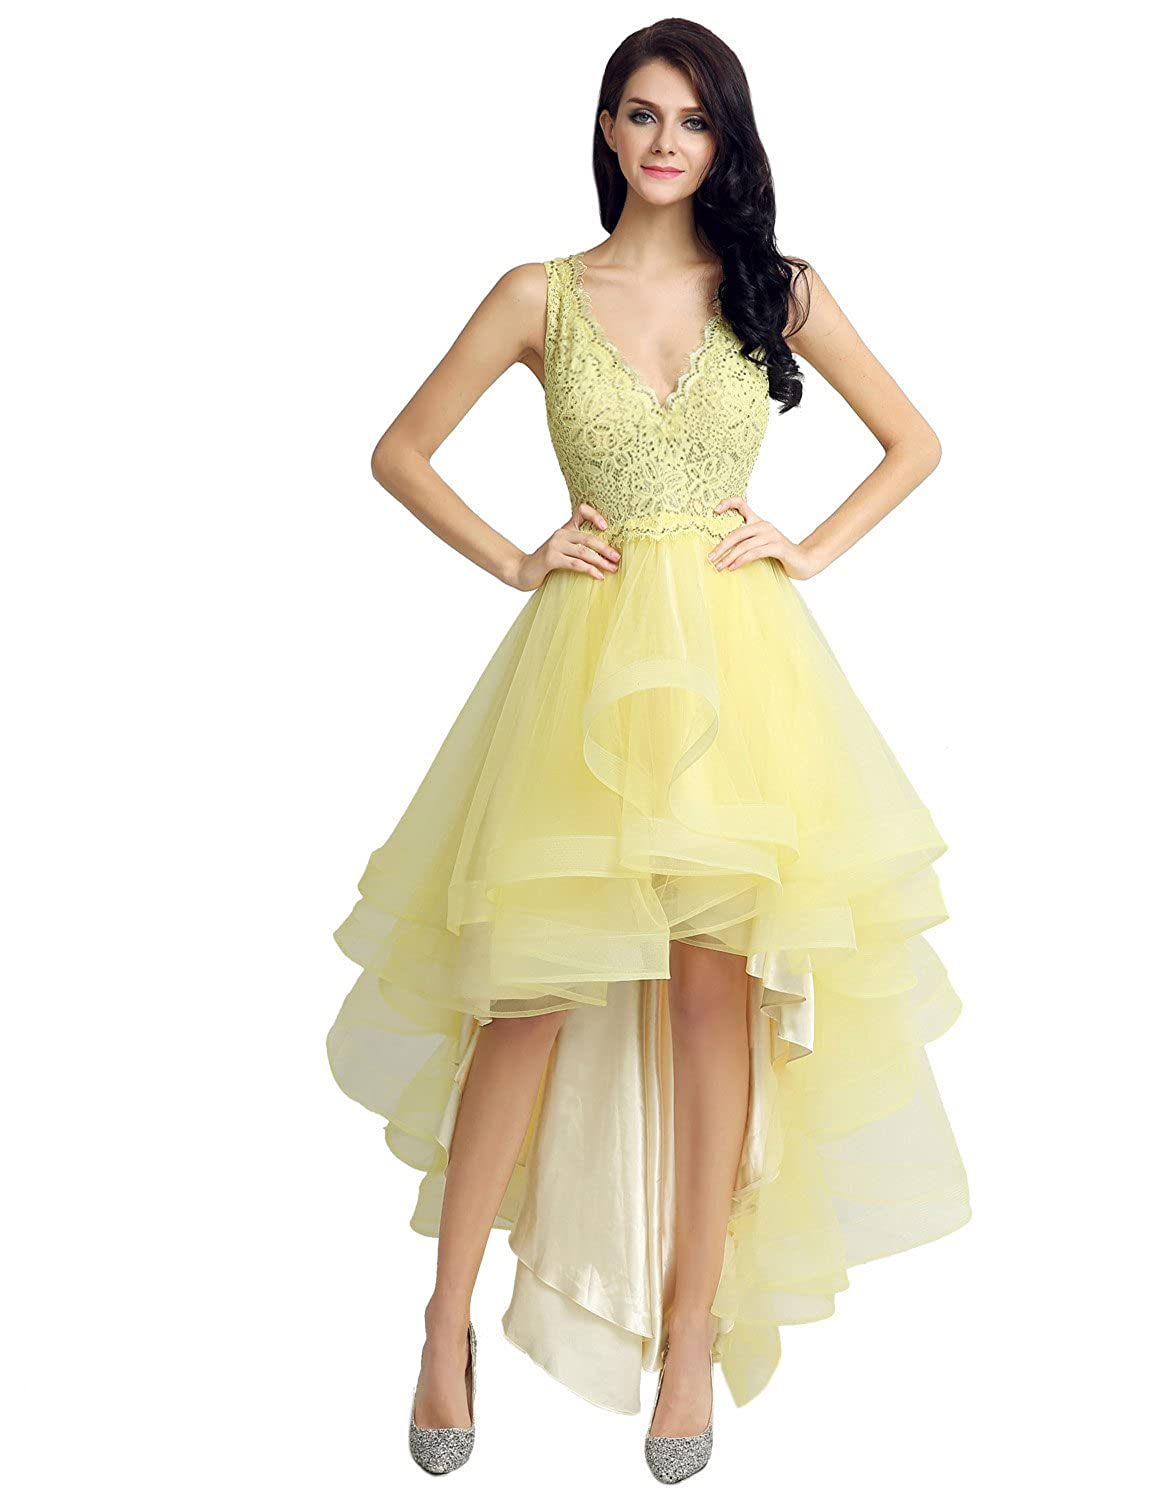 Yellow230 Belle House High Low Cocktail Party Ball Gown 2019 Prom Dresses for Women with Beads